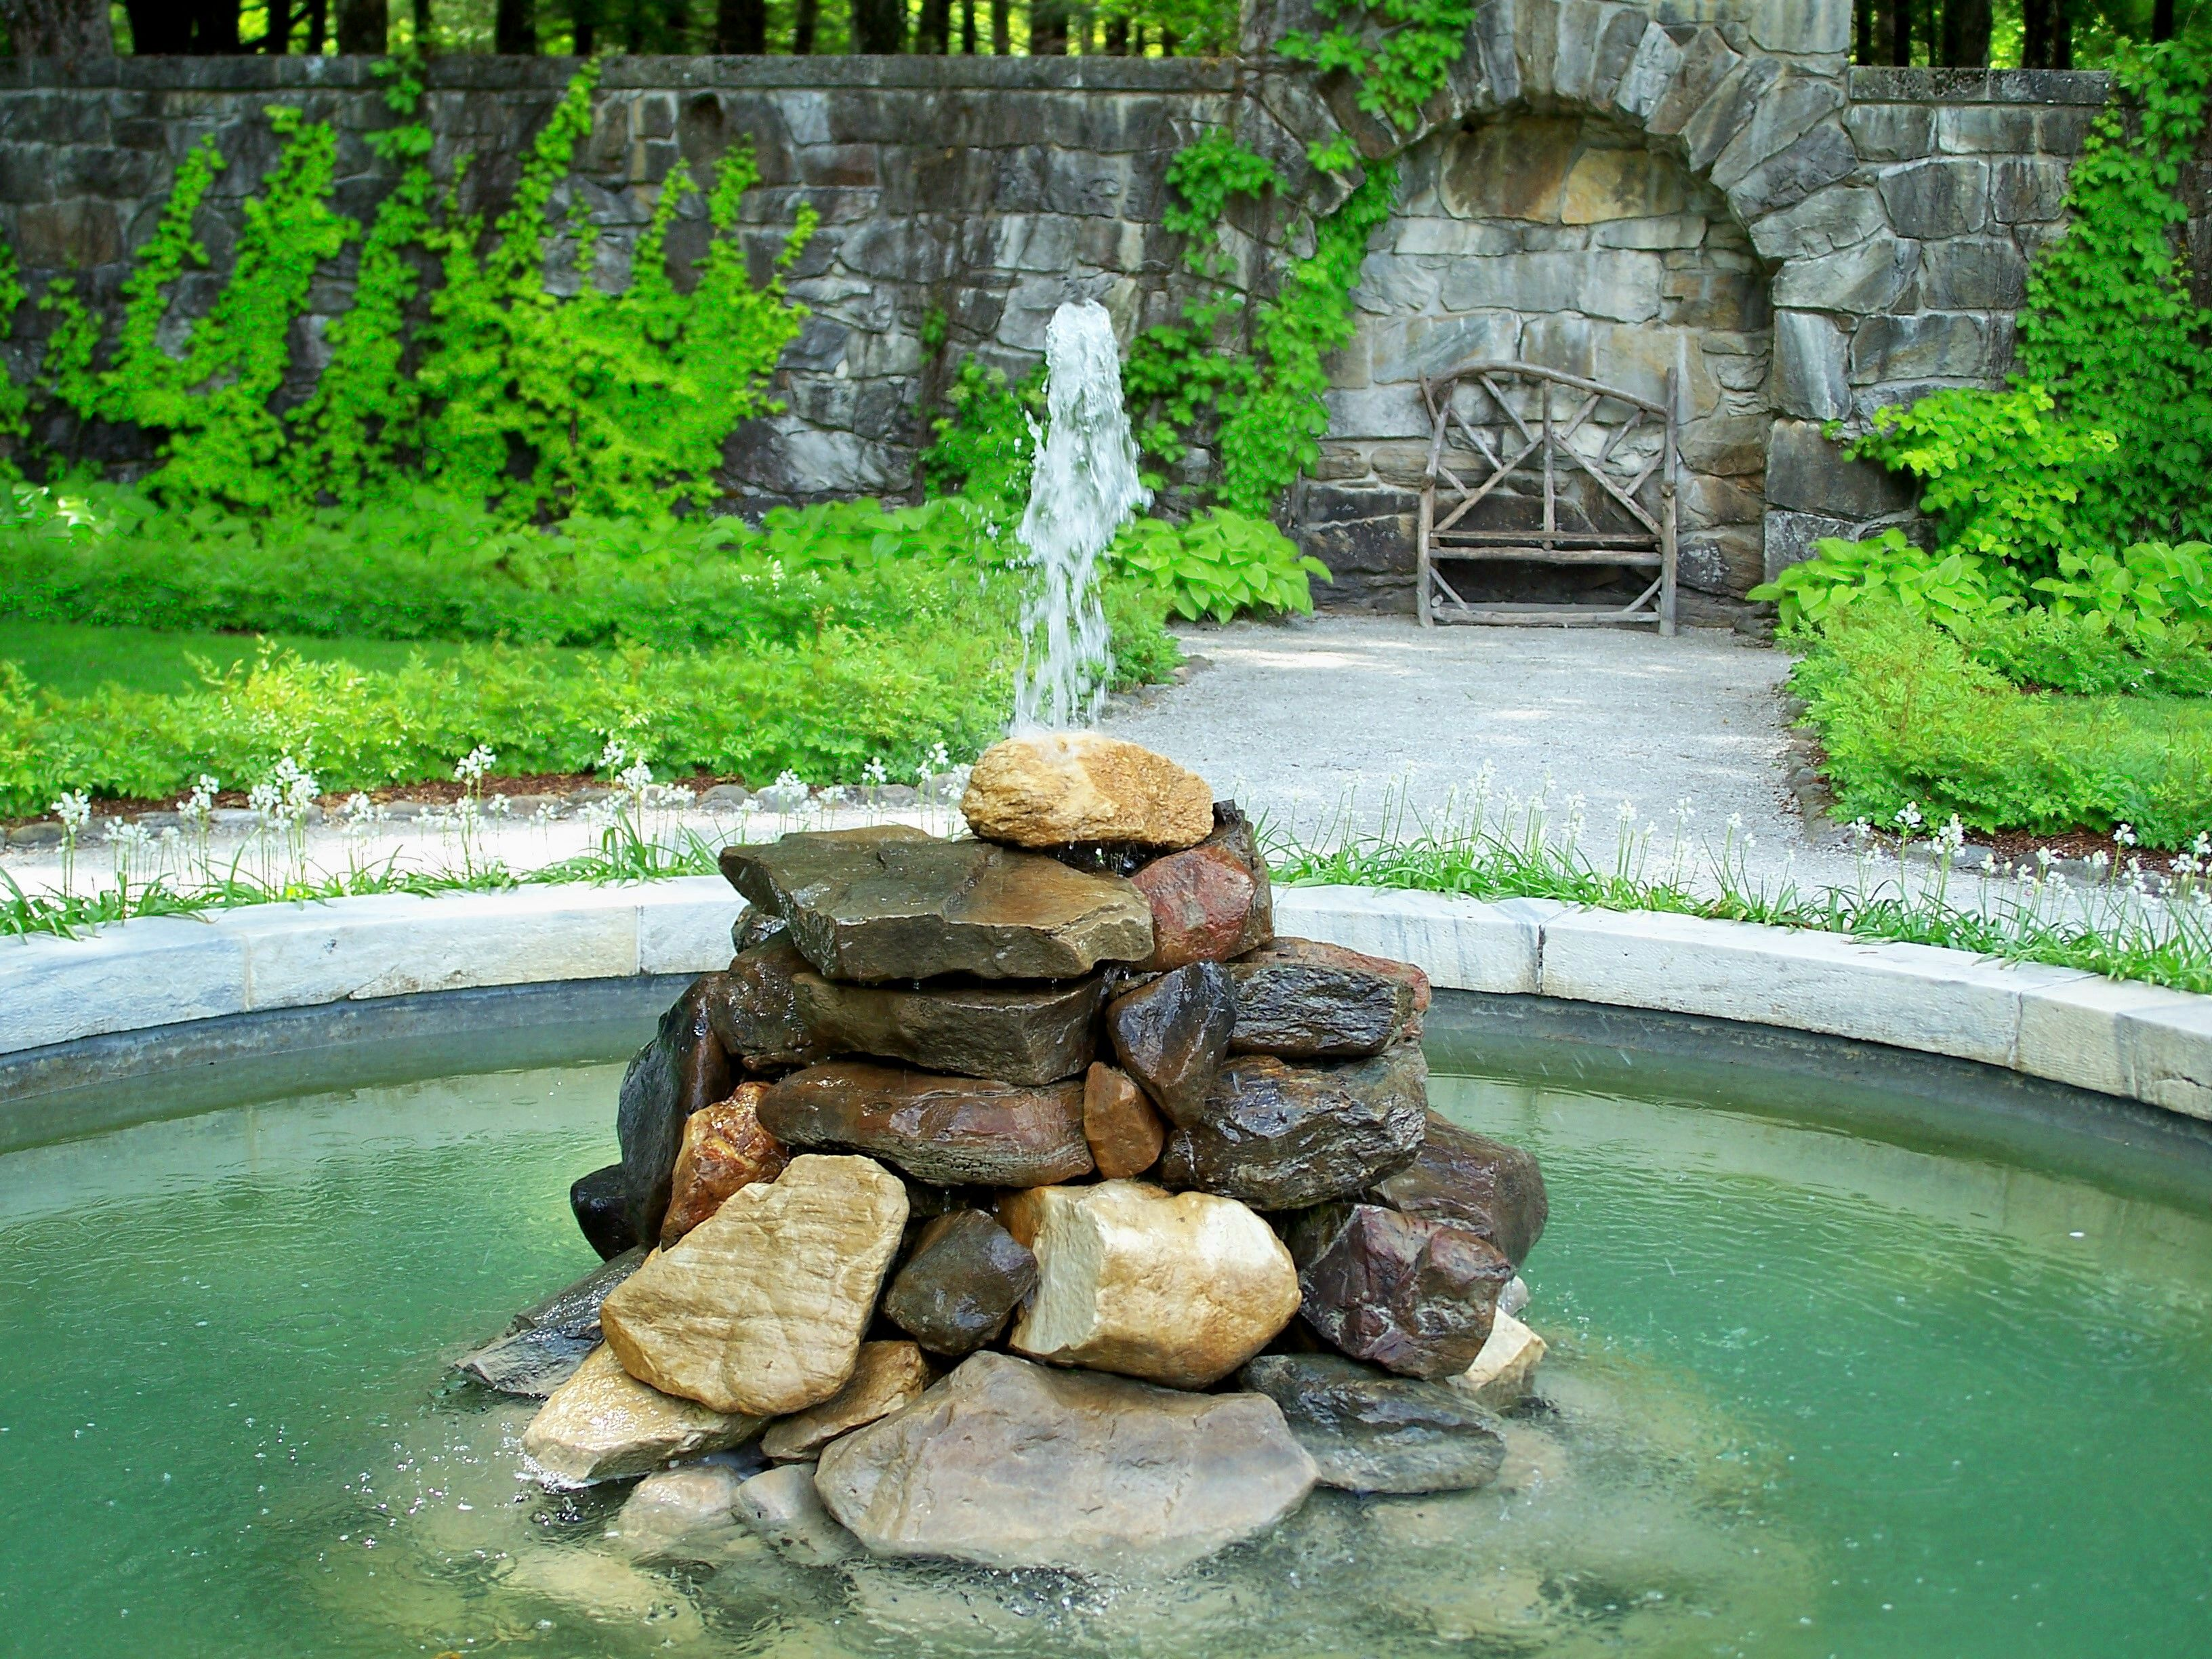 7 best ideas about Fountains on Pinterest Gardens Creative and